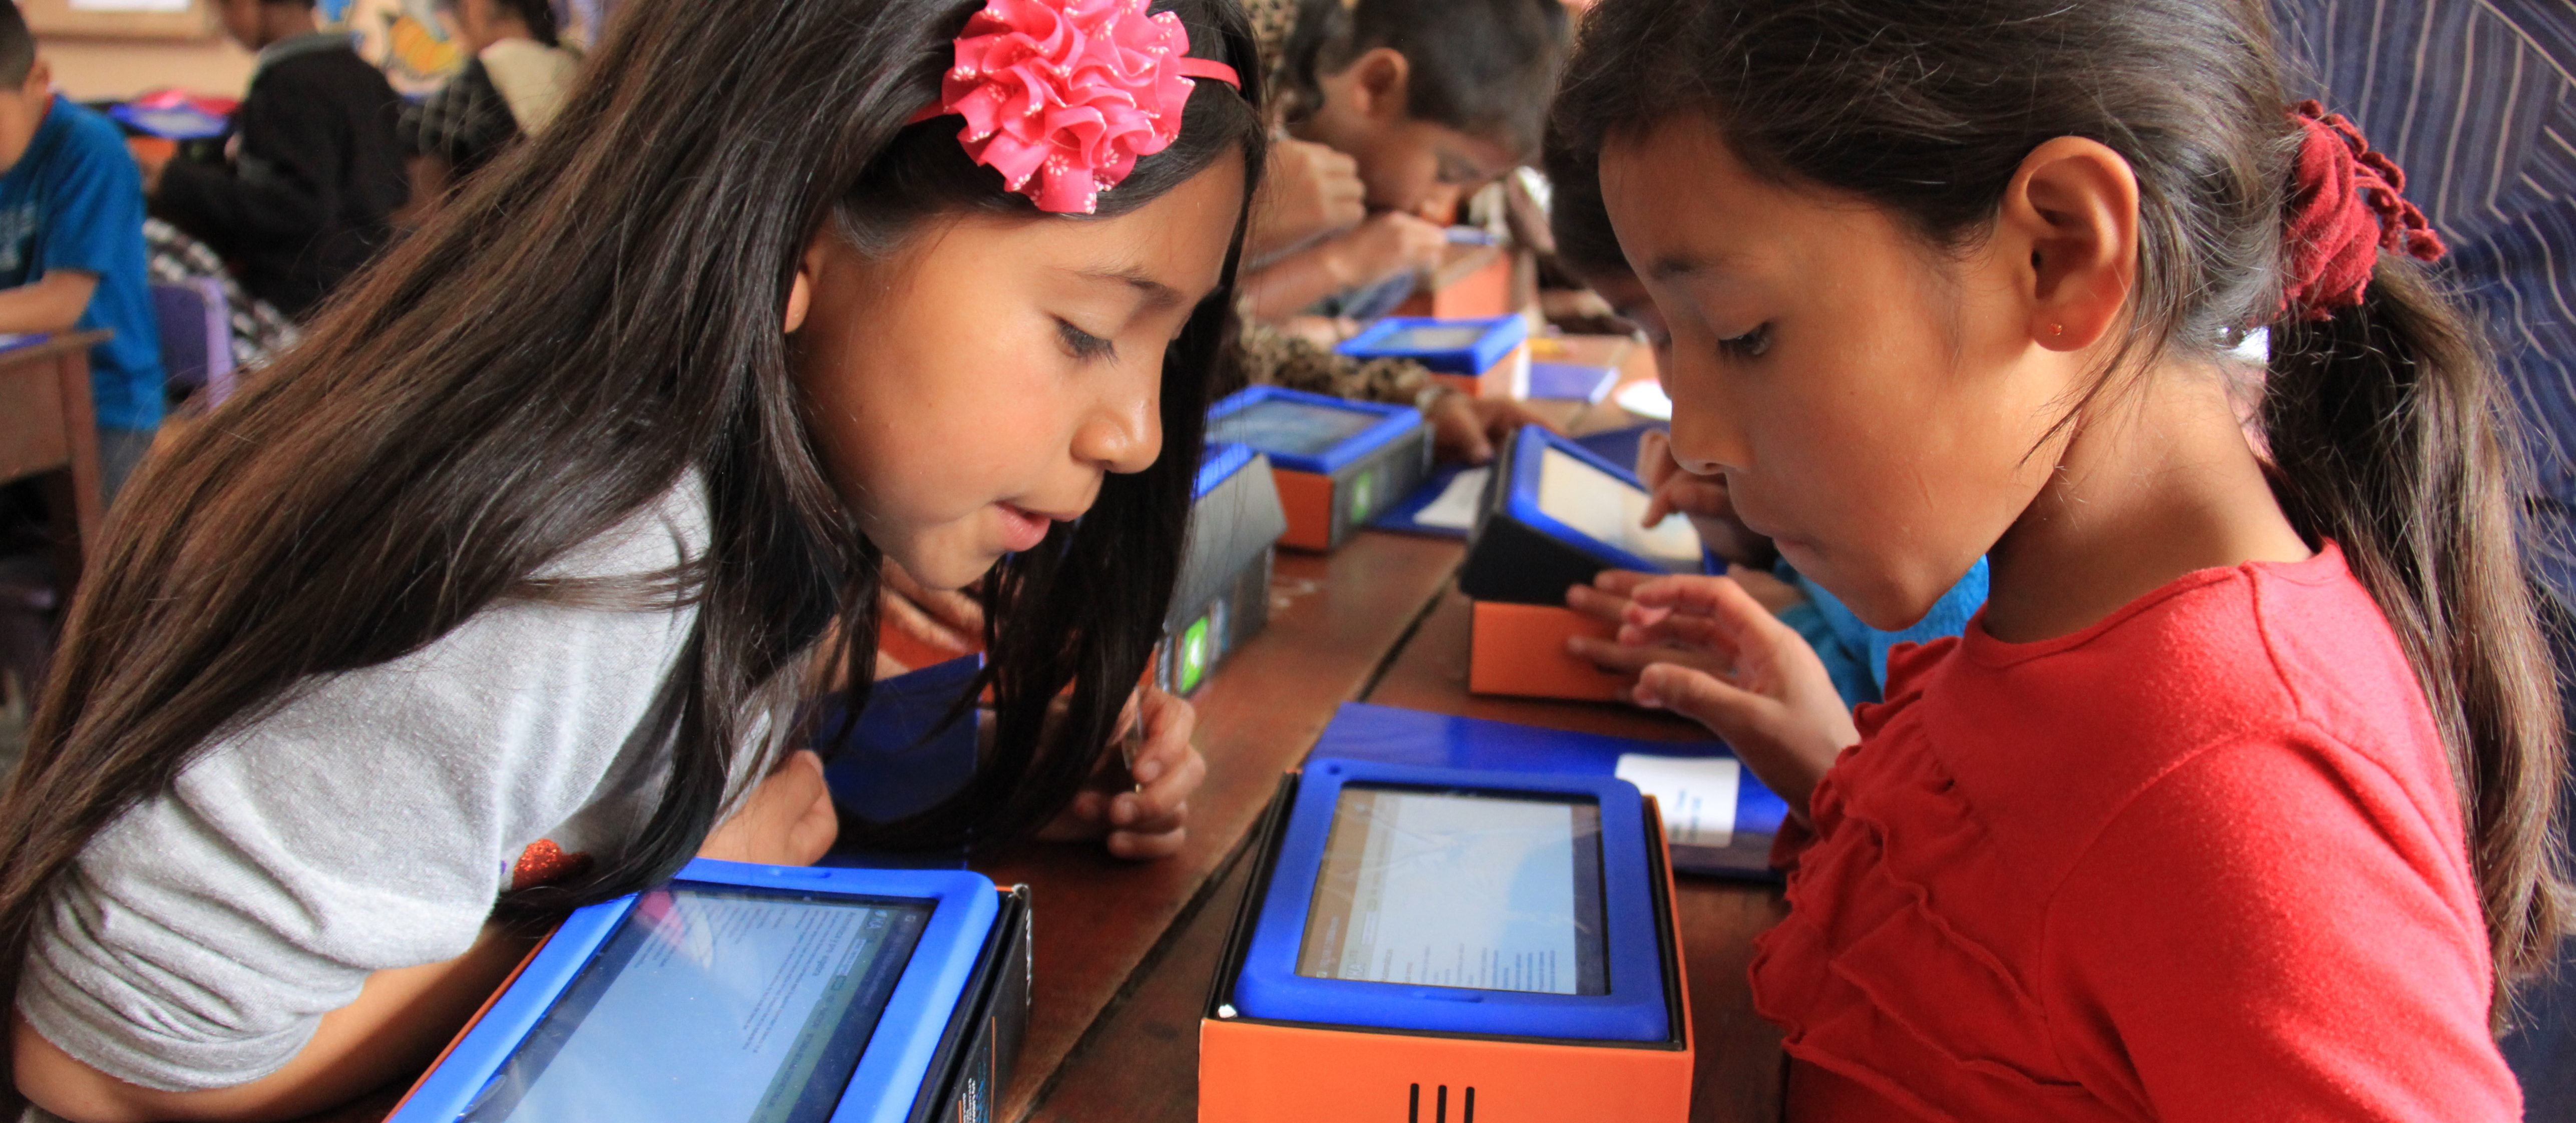 600 Million Young People Lack Access to Quality Education. This Startup is Changing That